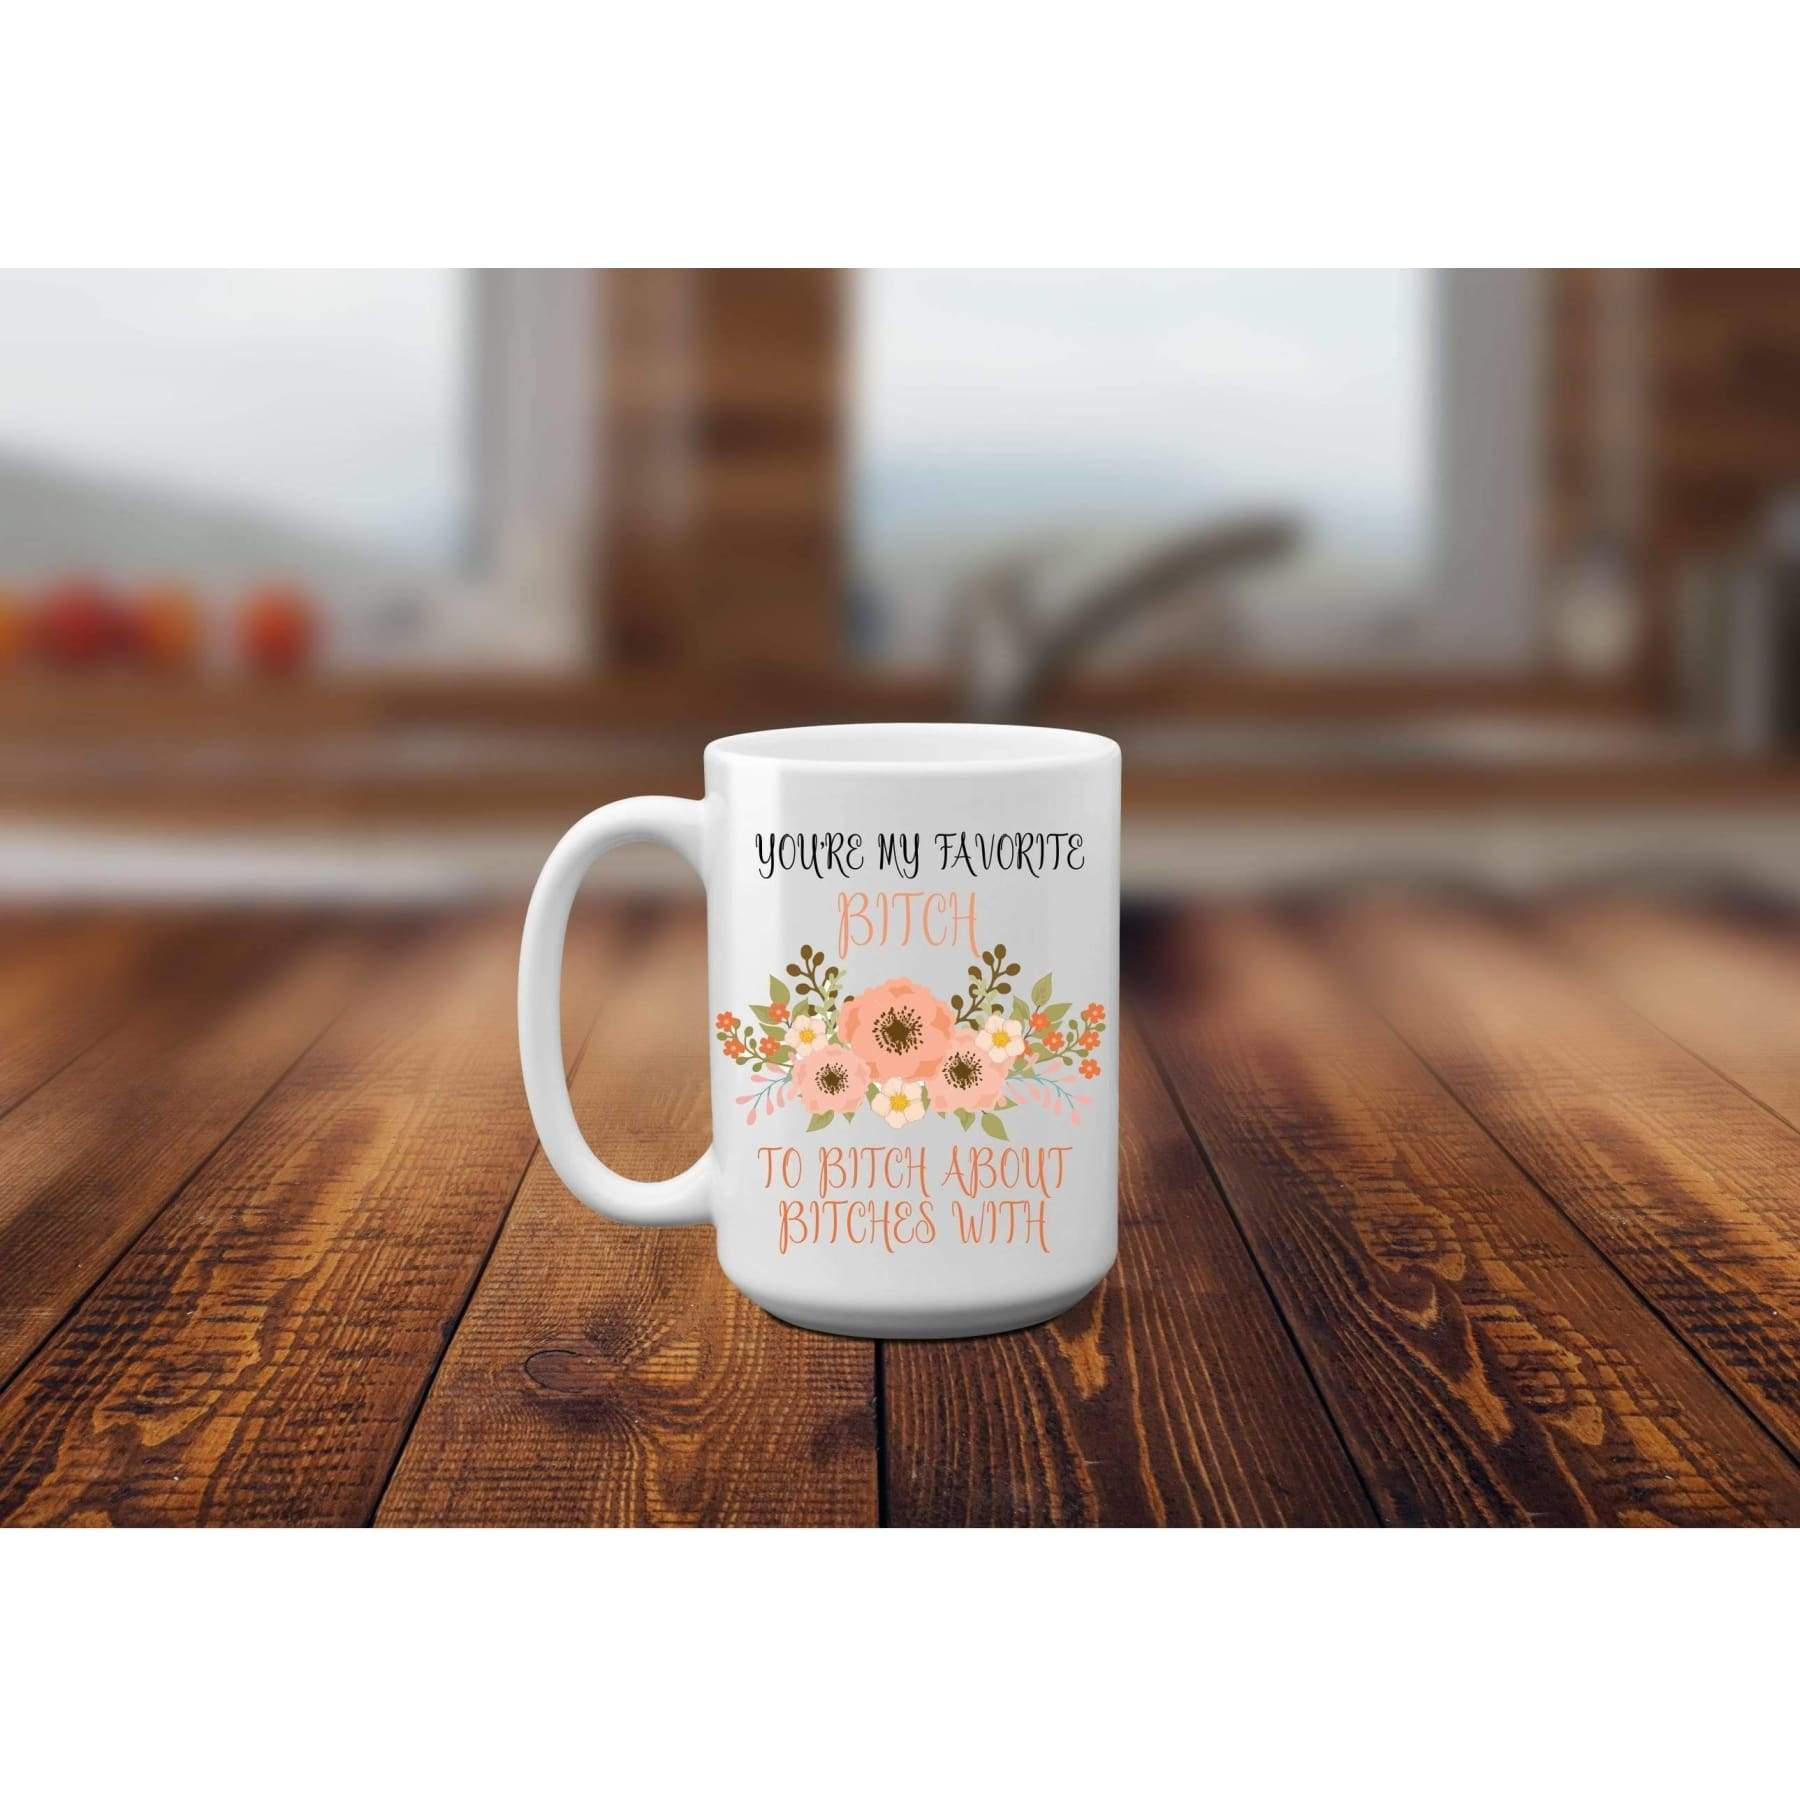 Rude Mugs - You're My Favorite Bitch to Bitch About Mug.